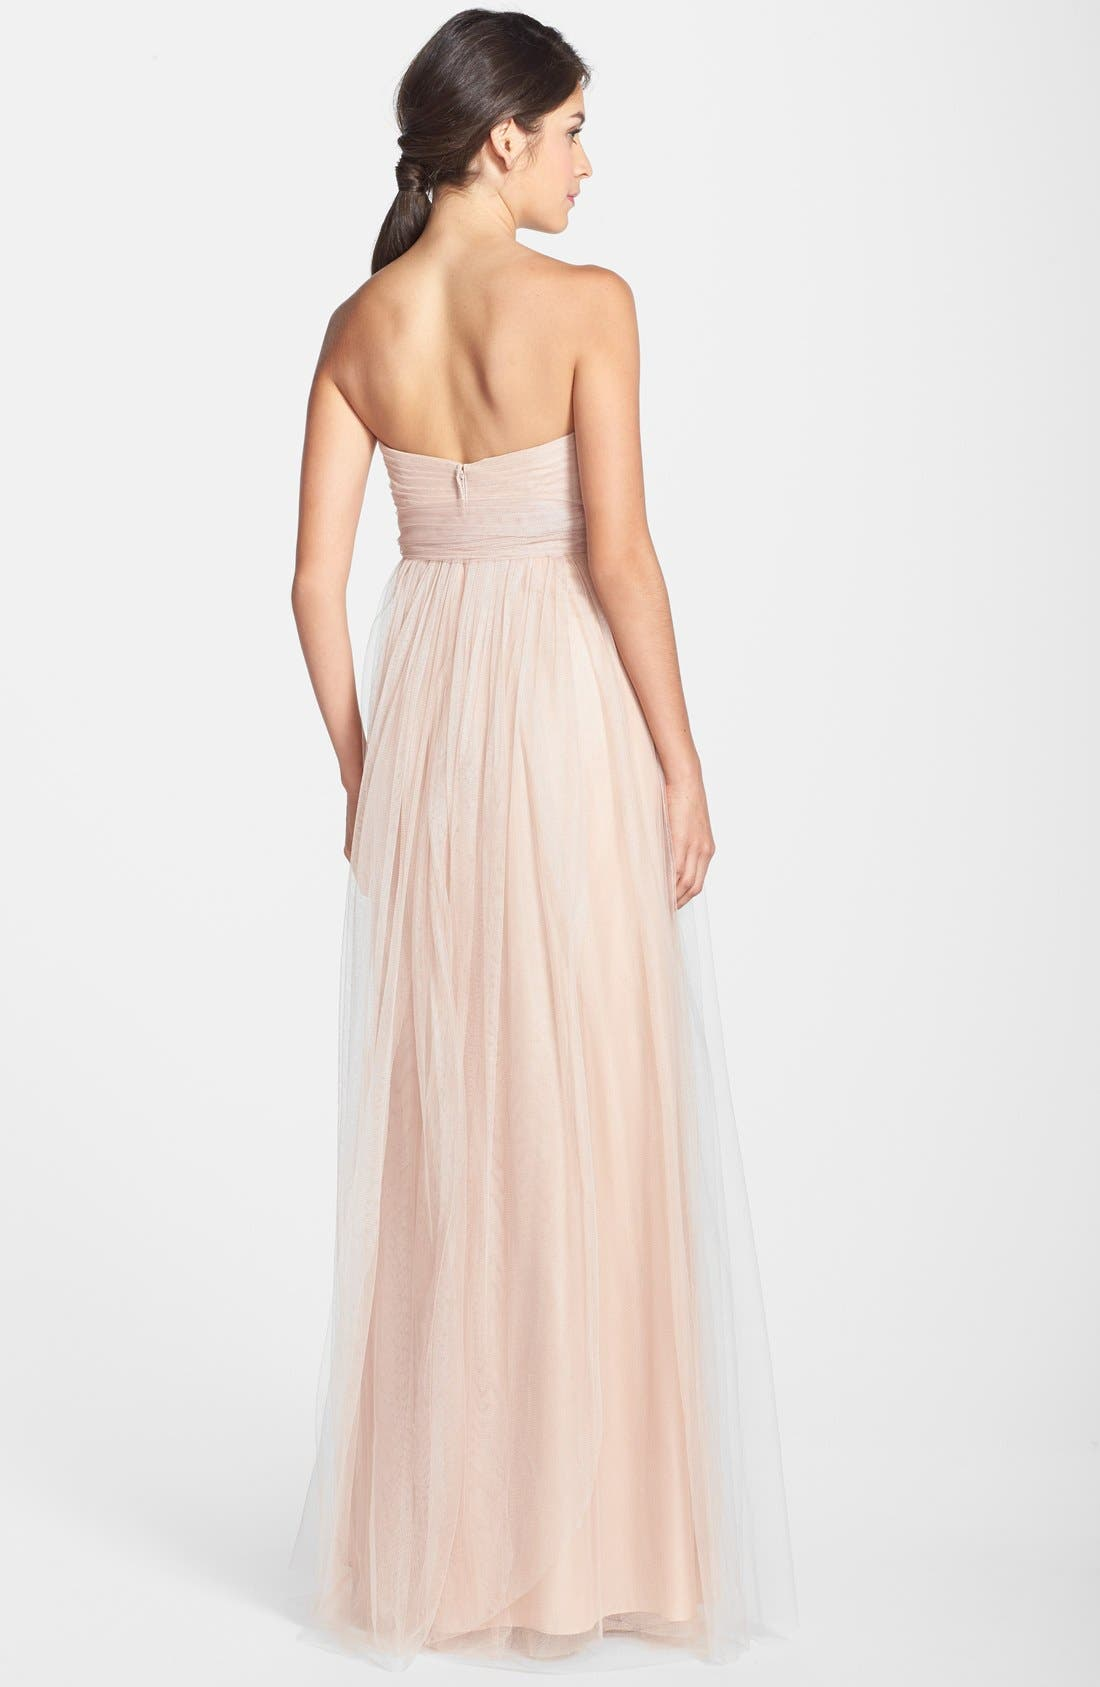 Annabelle Convertible Tulle Column Dress,                             Alternate thumbnail 153, color,